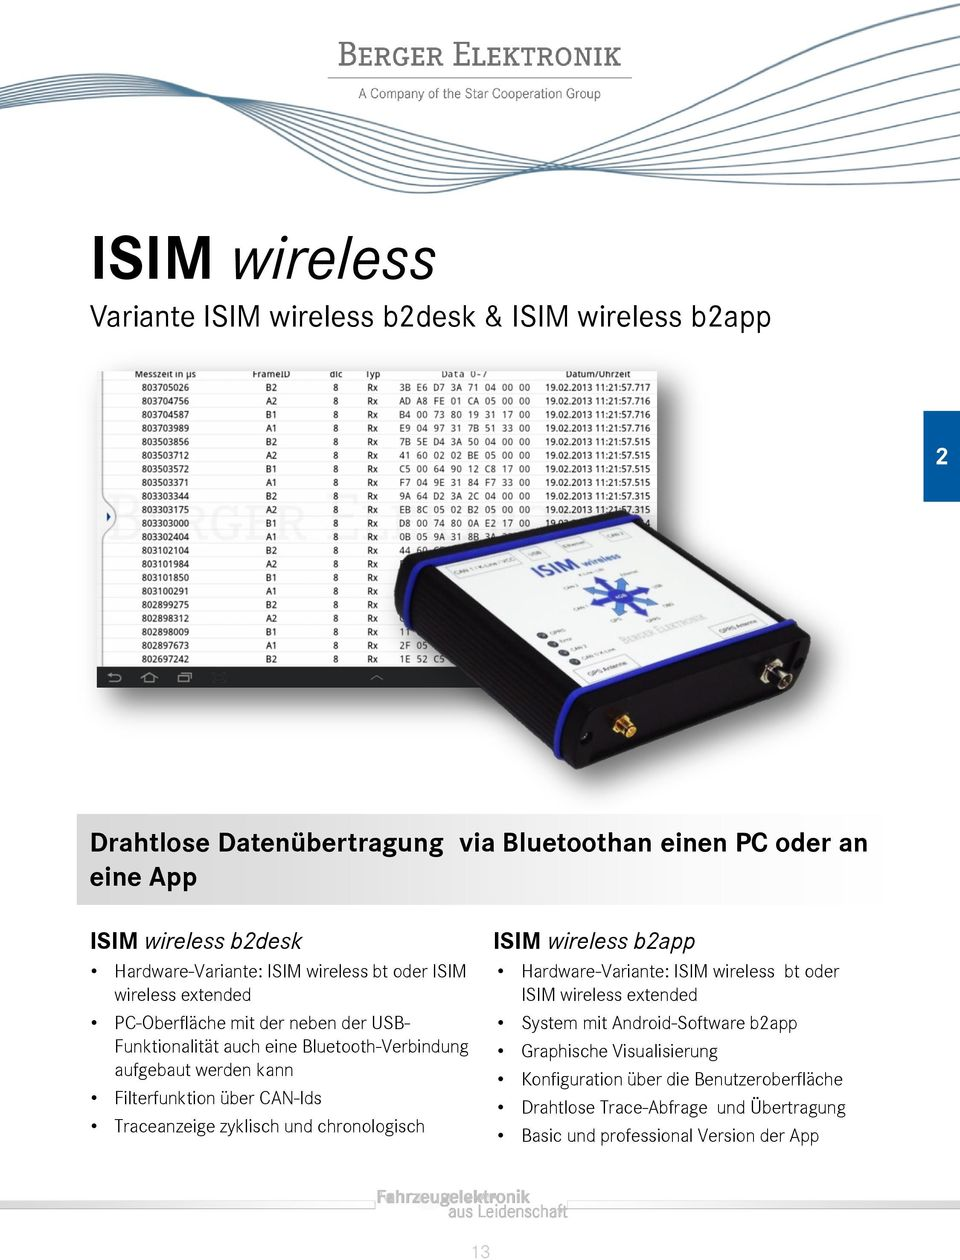 kann Filterfunktion über CAN-Ids Traceanzeige zyklisch und chronologisch ISIM wireless b2app Hardware-Variante: ISIM wireless bt oder ISIM wireless extended System